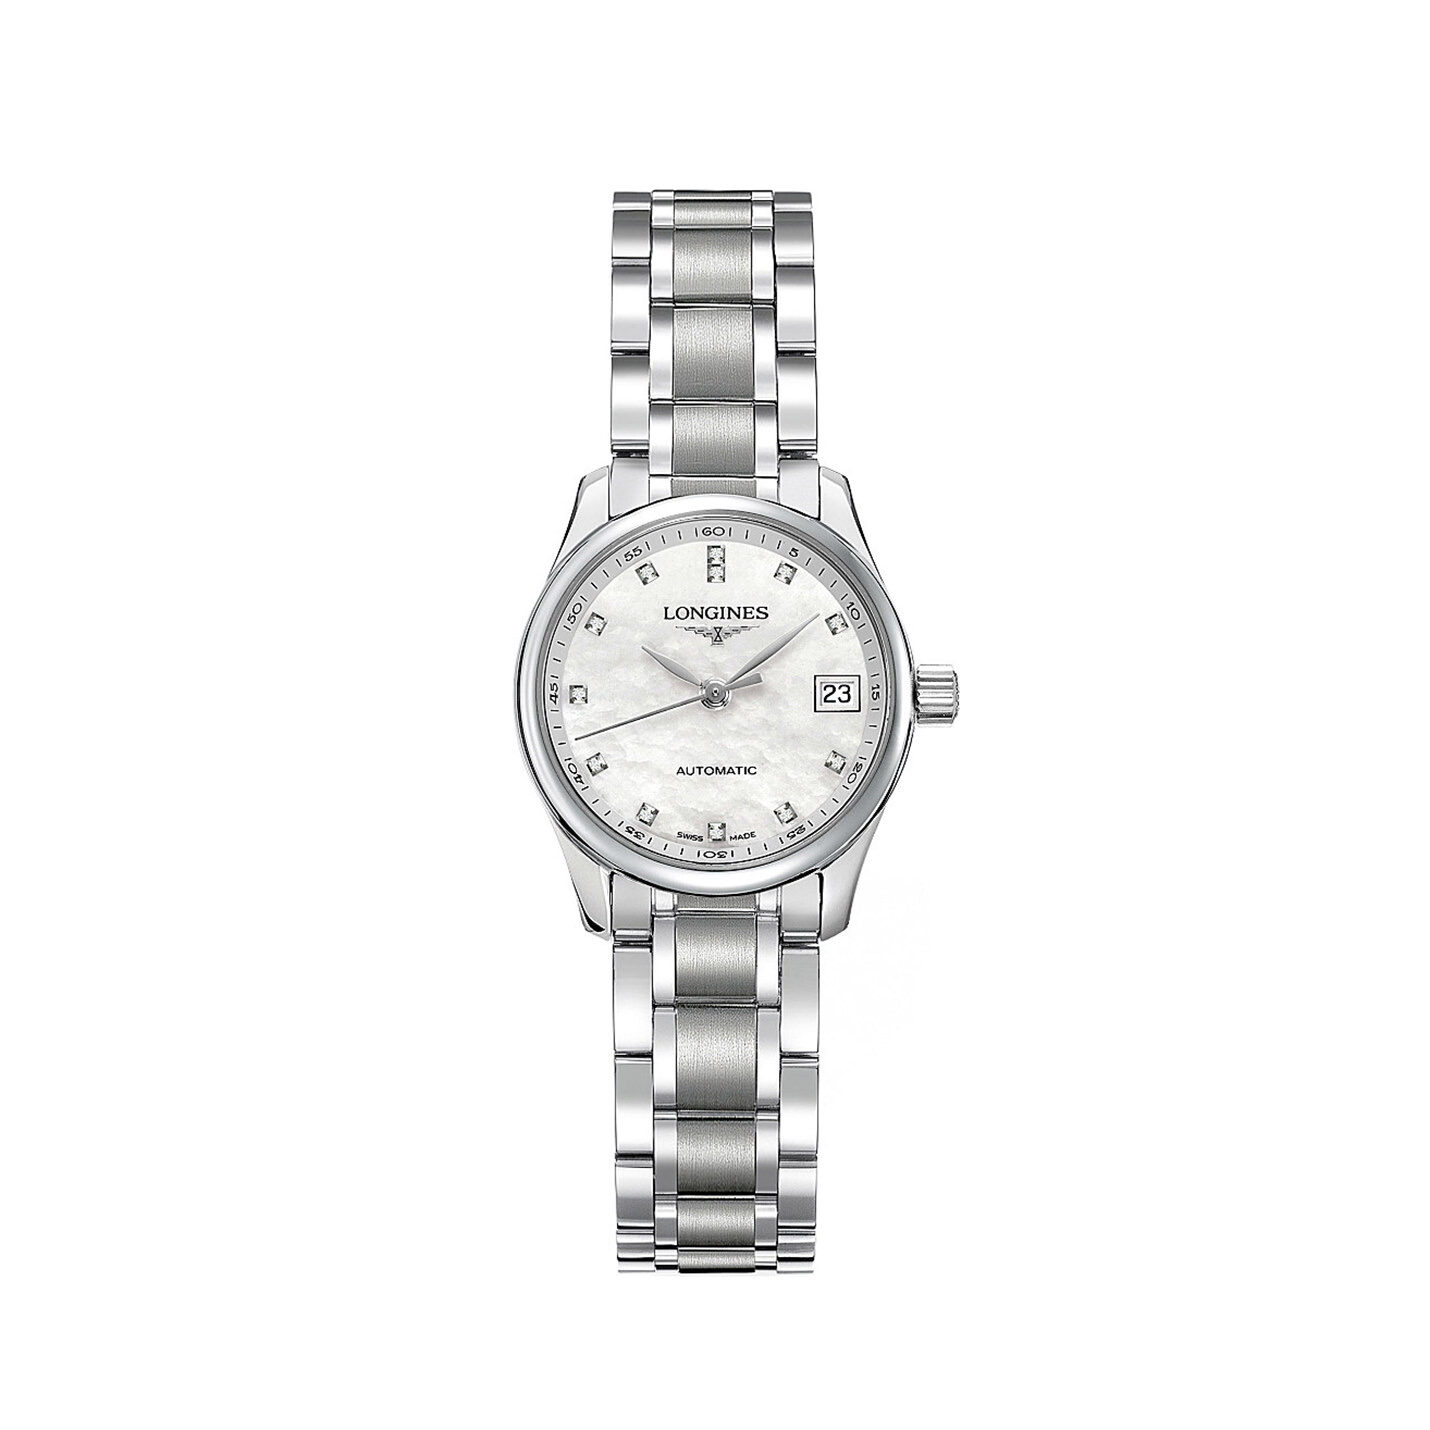 Longines Master Collection – Automatic Watch